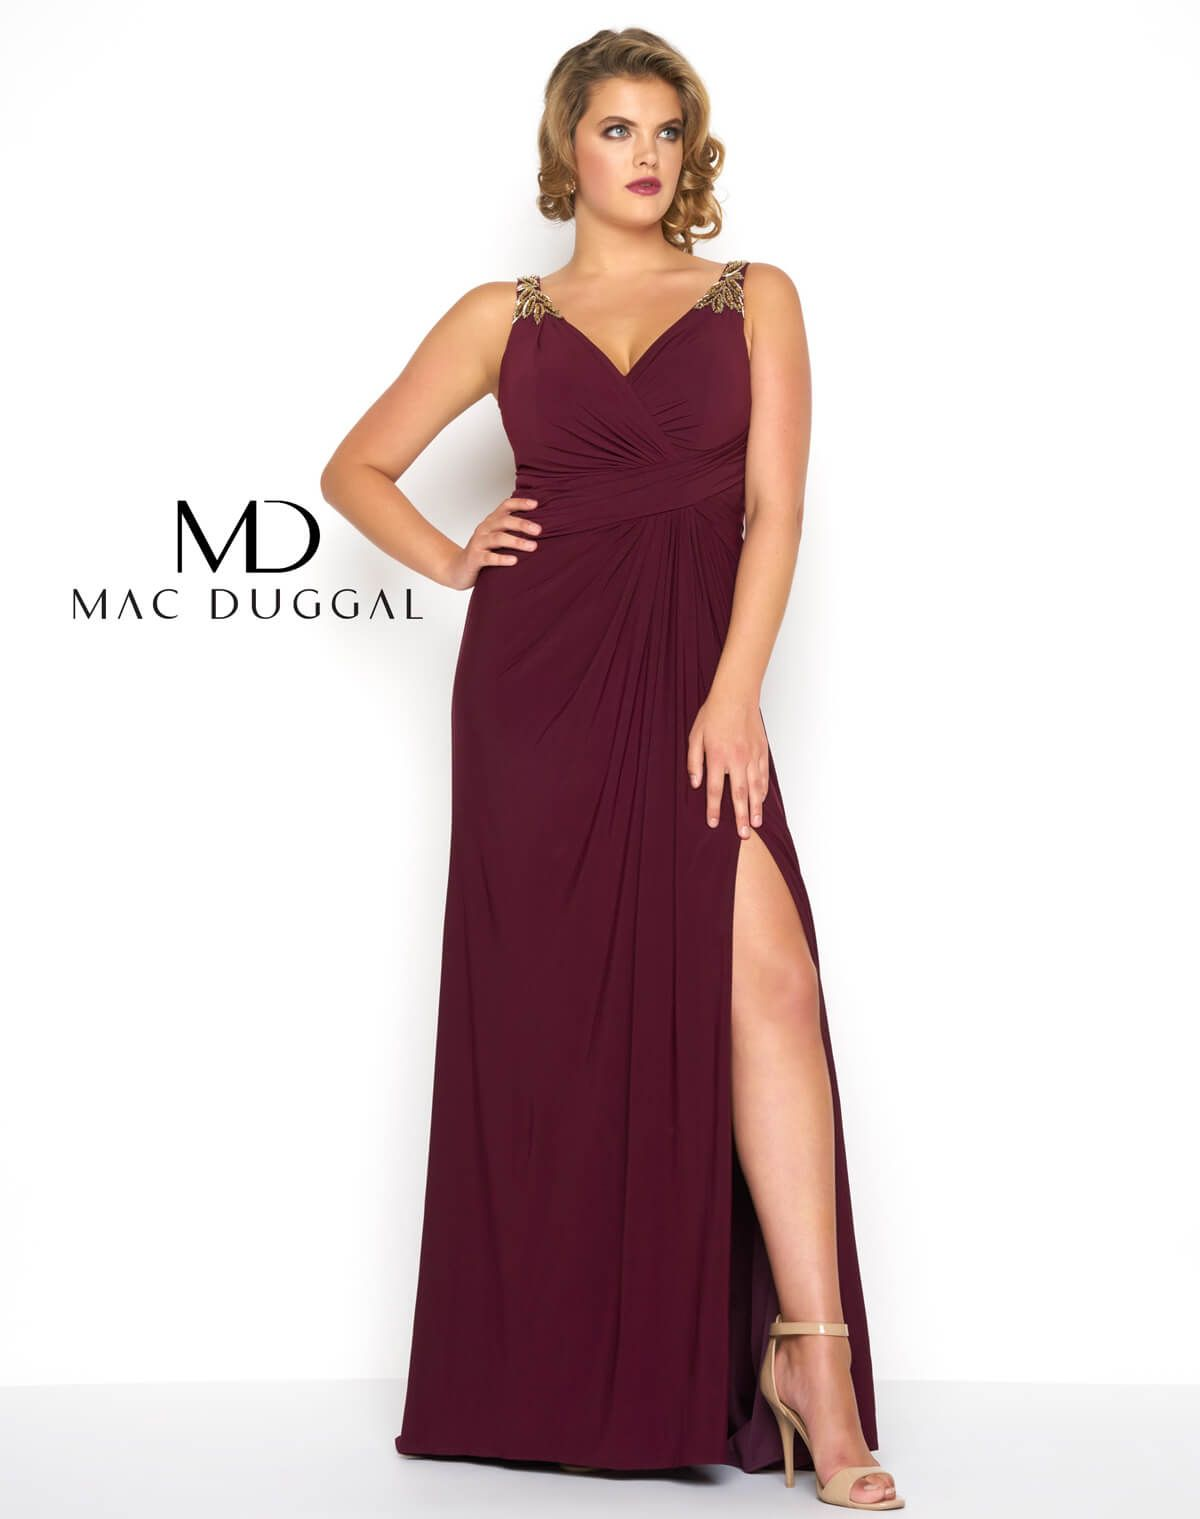 Grecian inspired sleeveless jersey plus size prom dress with ...